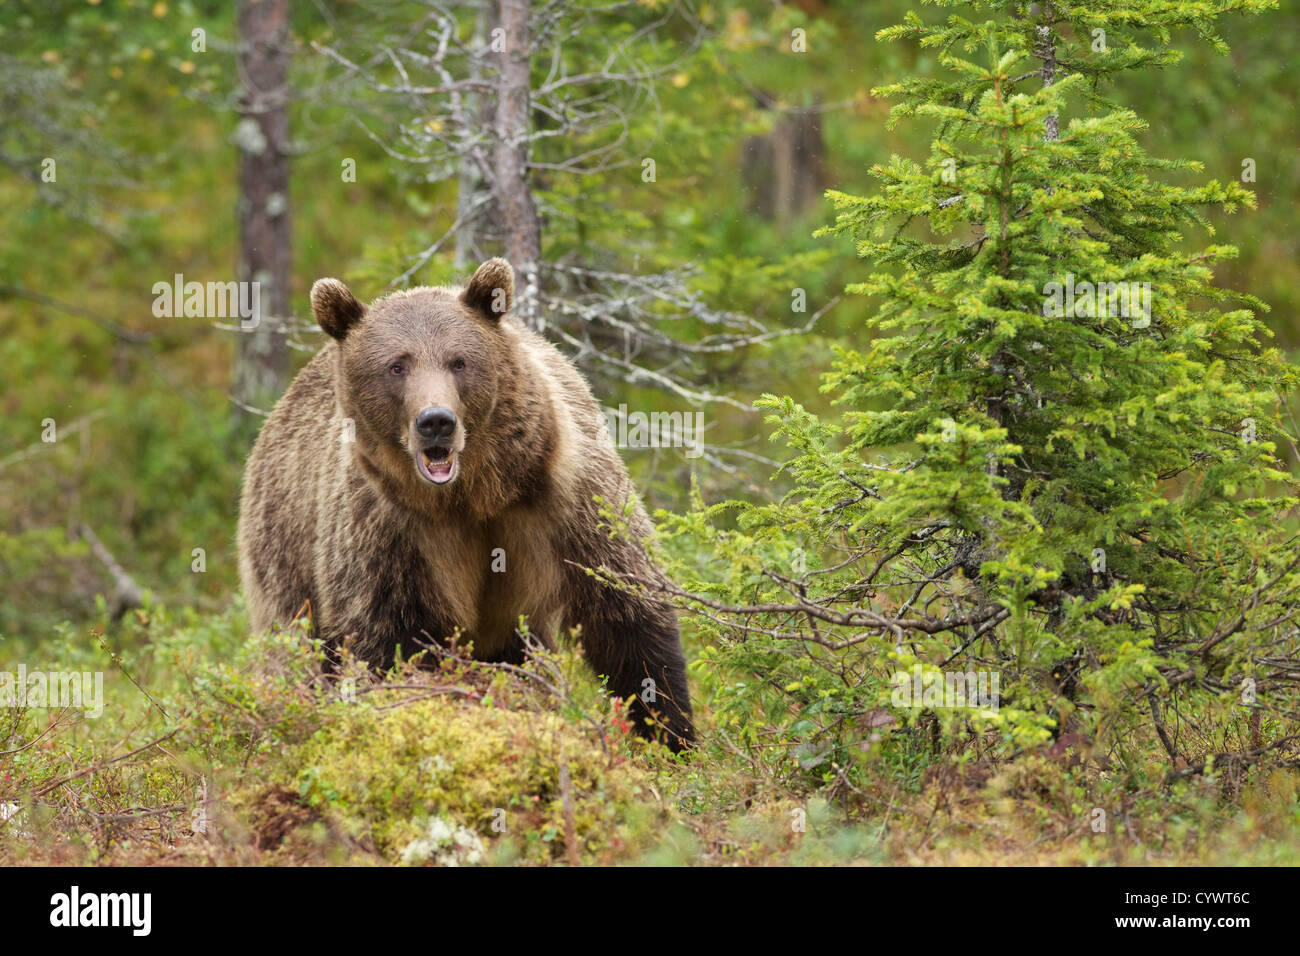 Eurasian Brown Bear (Ursus Arctus Arctus) in East Central Finland. Stock Photo